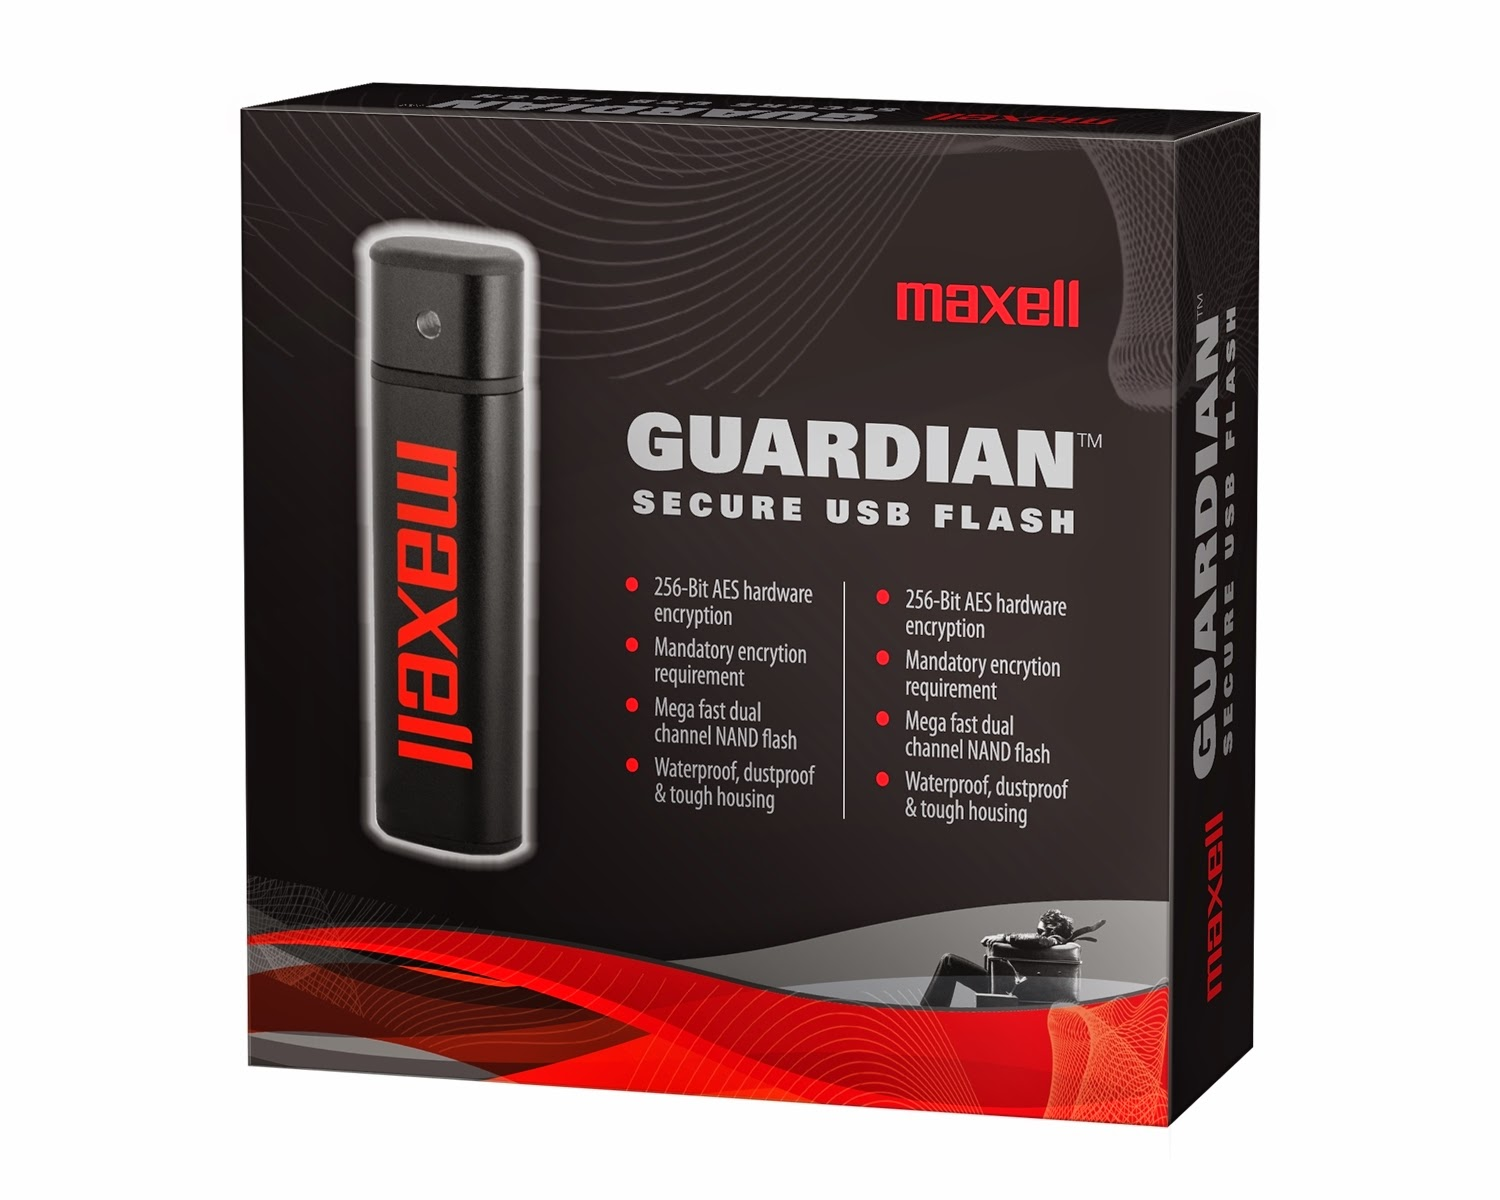 Download USB Guardian 3.6.0 Terbaru